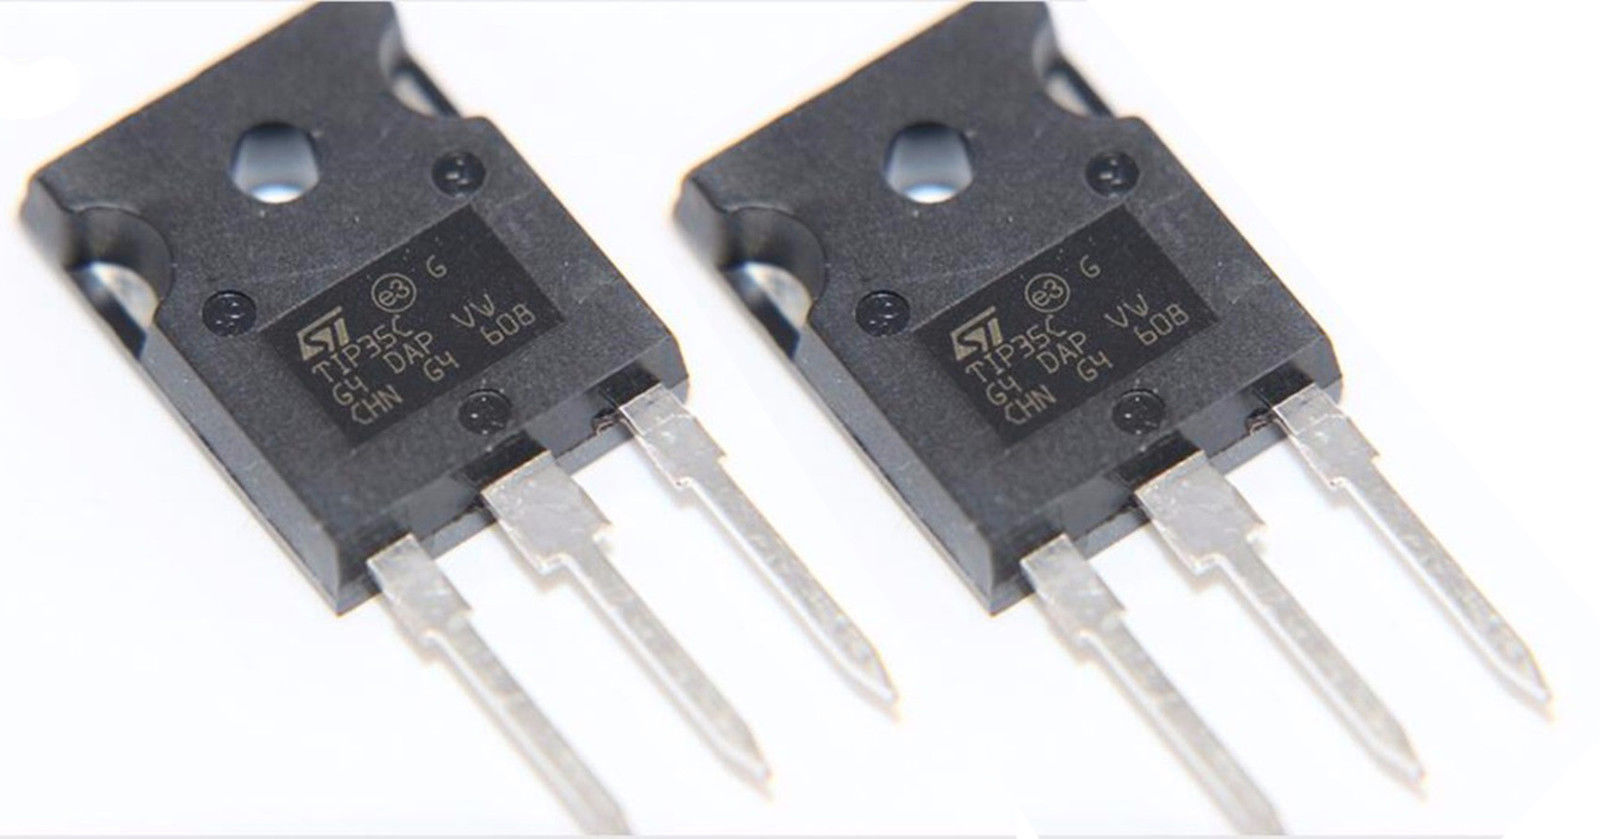 2 x TIP35C NPN Power Transistor TO-3P | All Top Notch